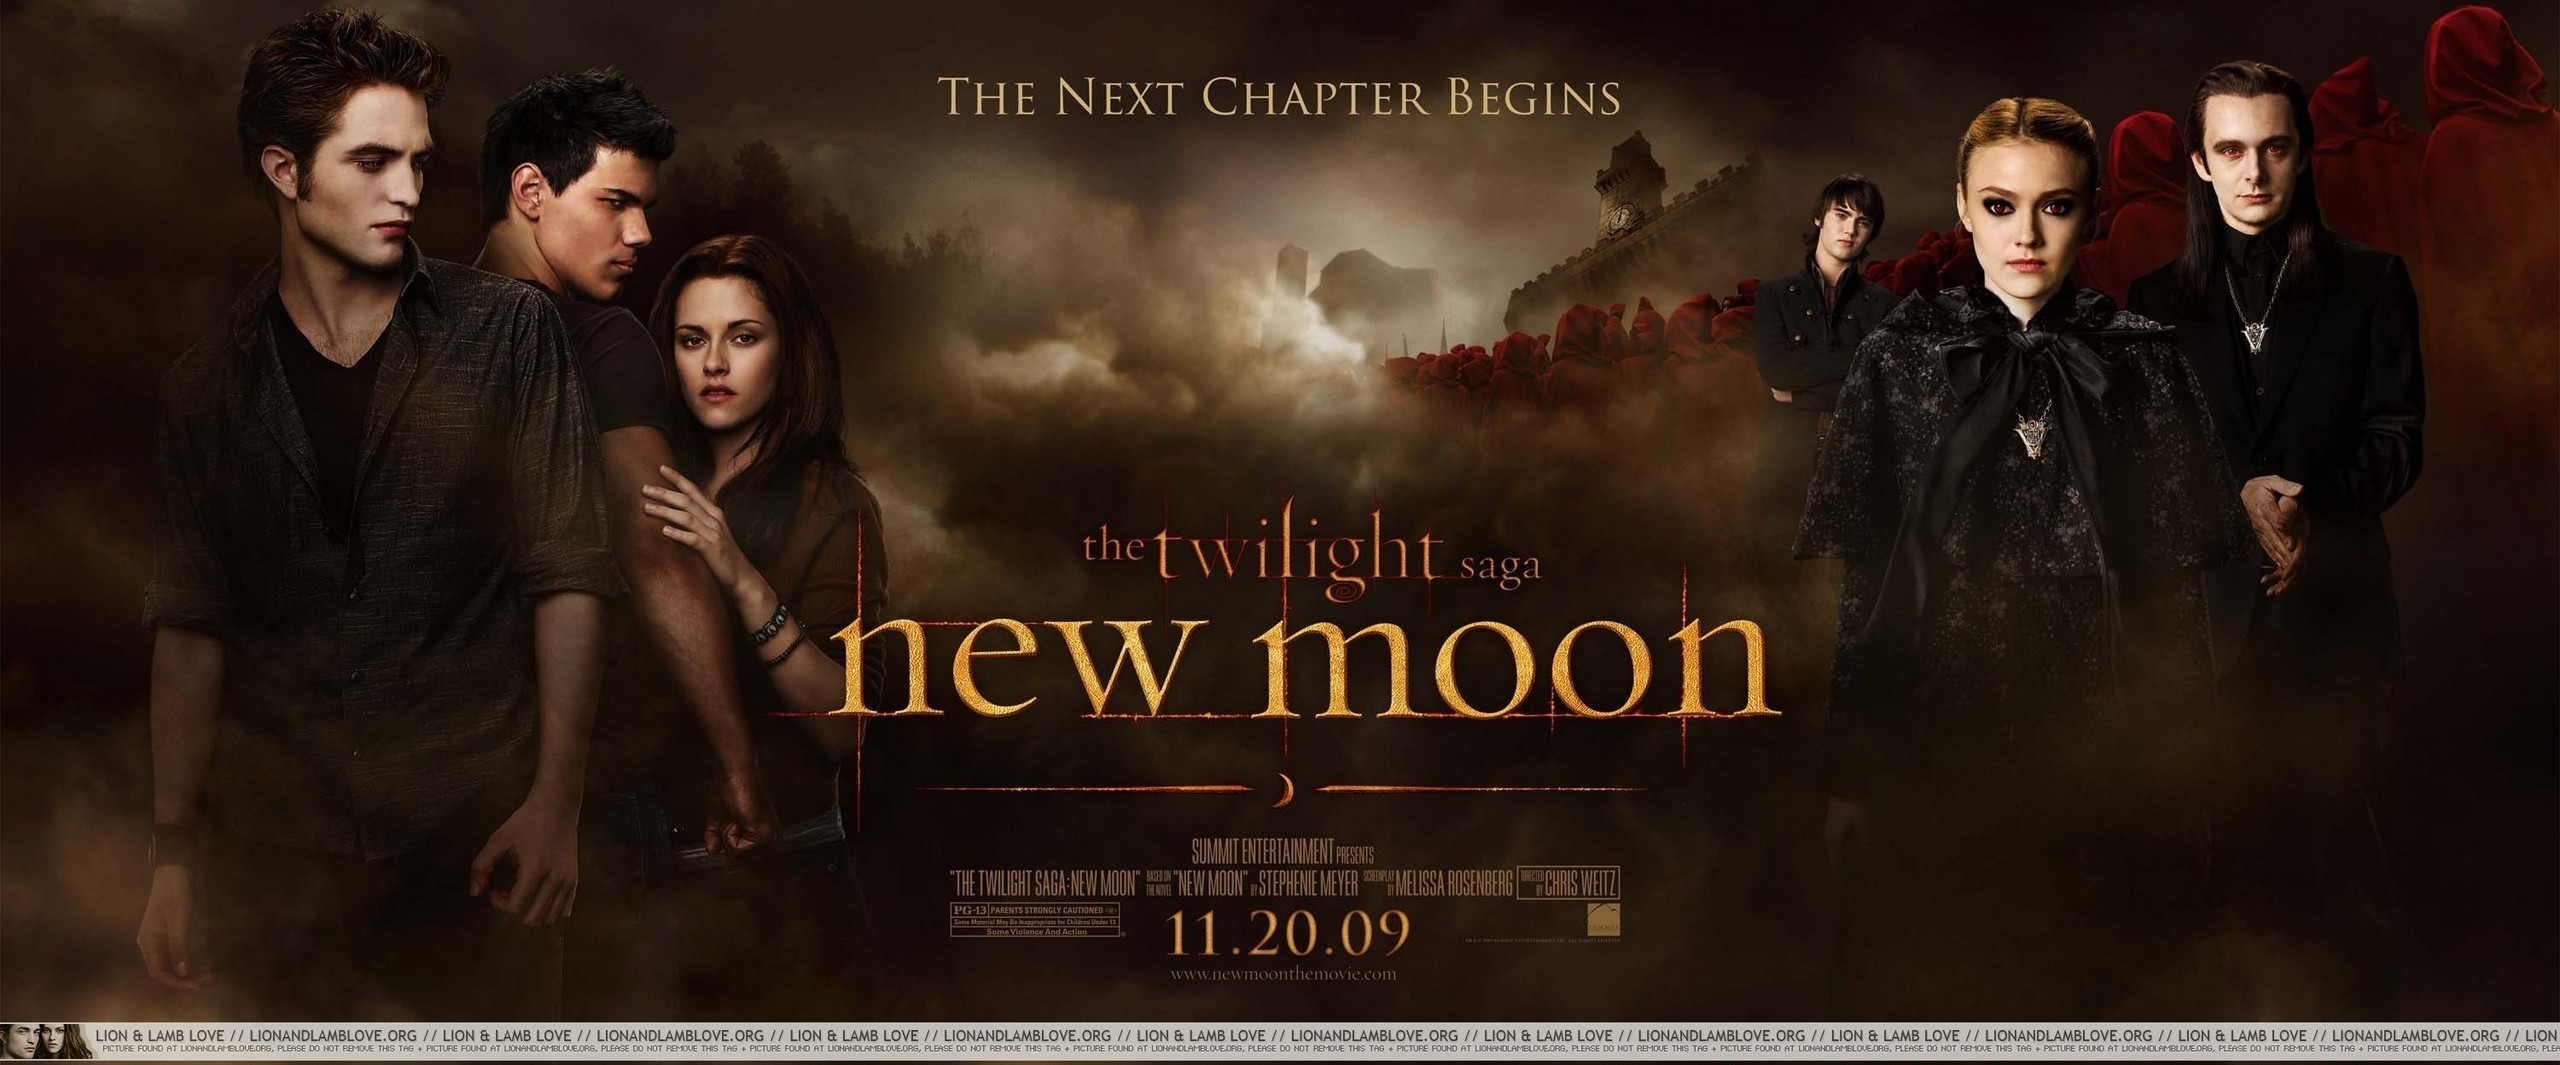 NEW MOON HIGH QUALITY PROMO PIC